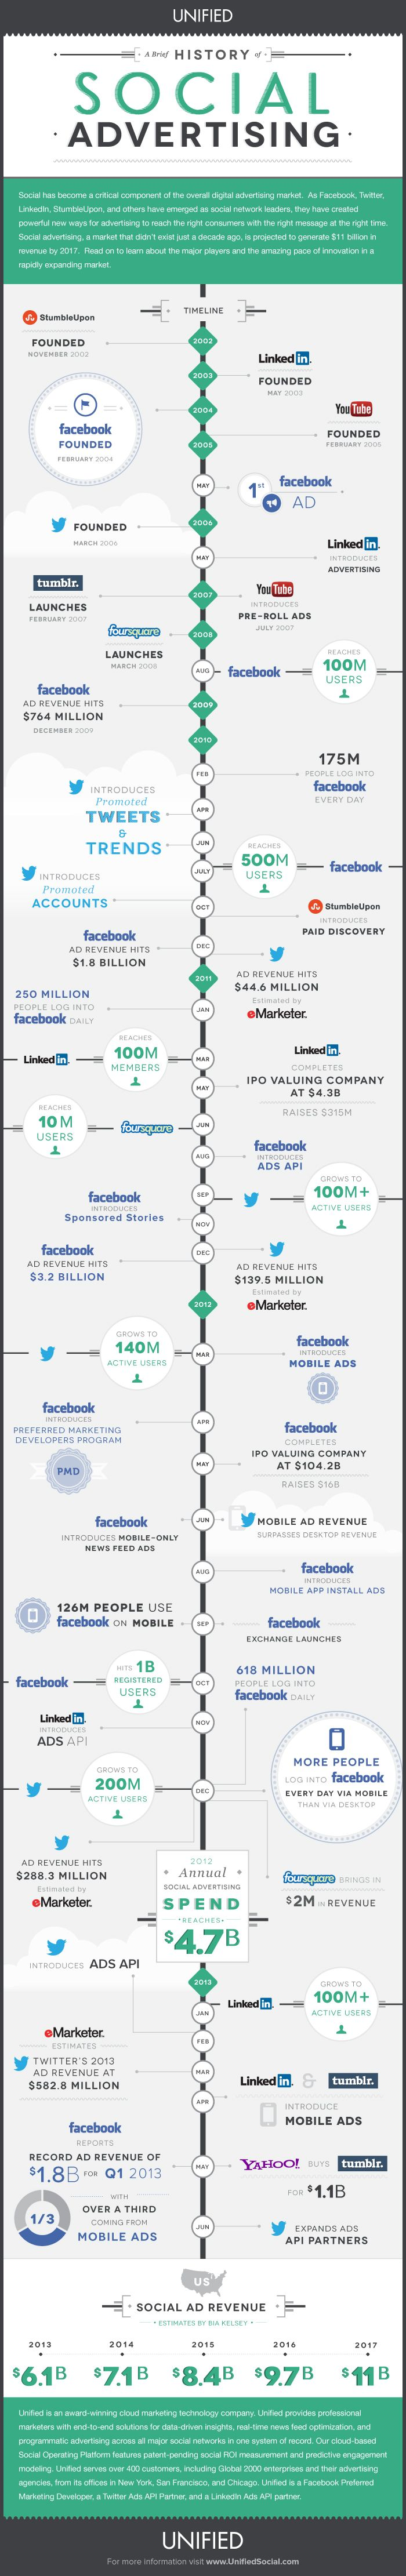 A Brief History of Social Advertising | Infographic